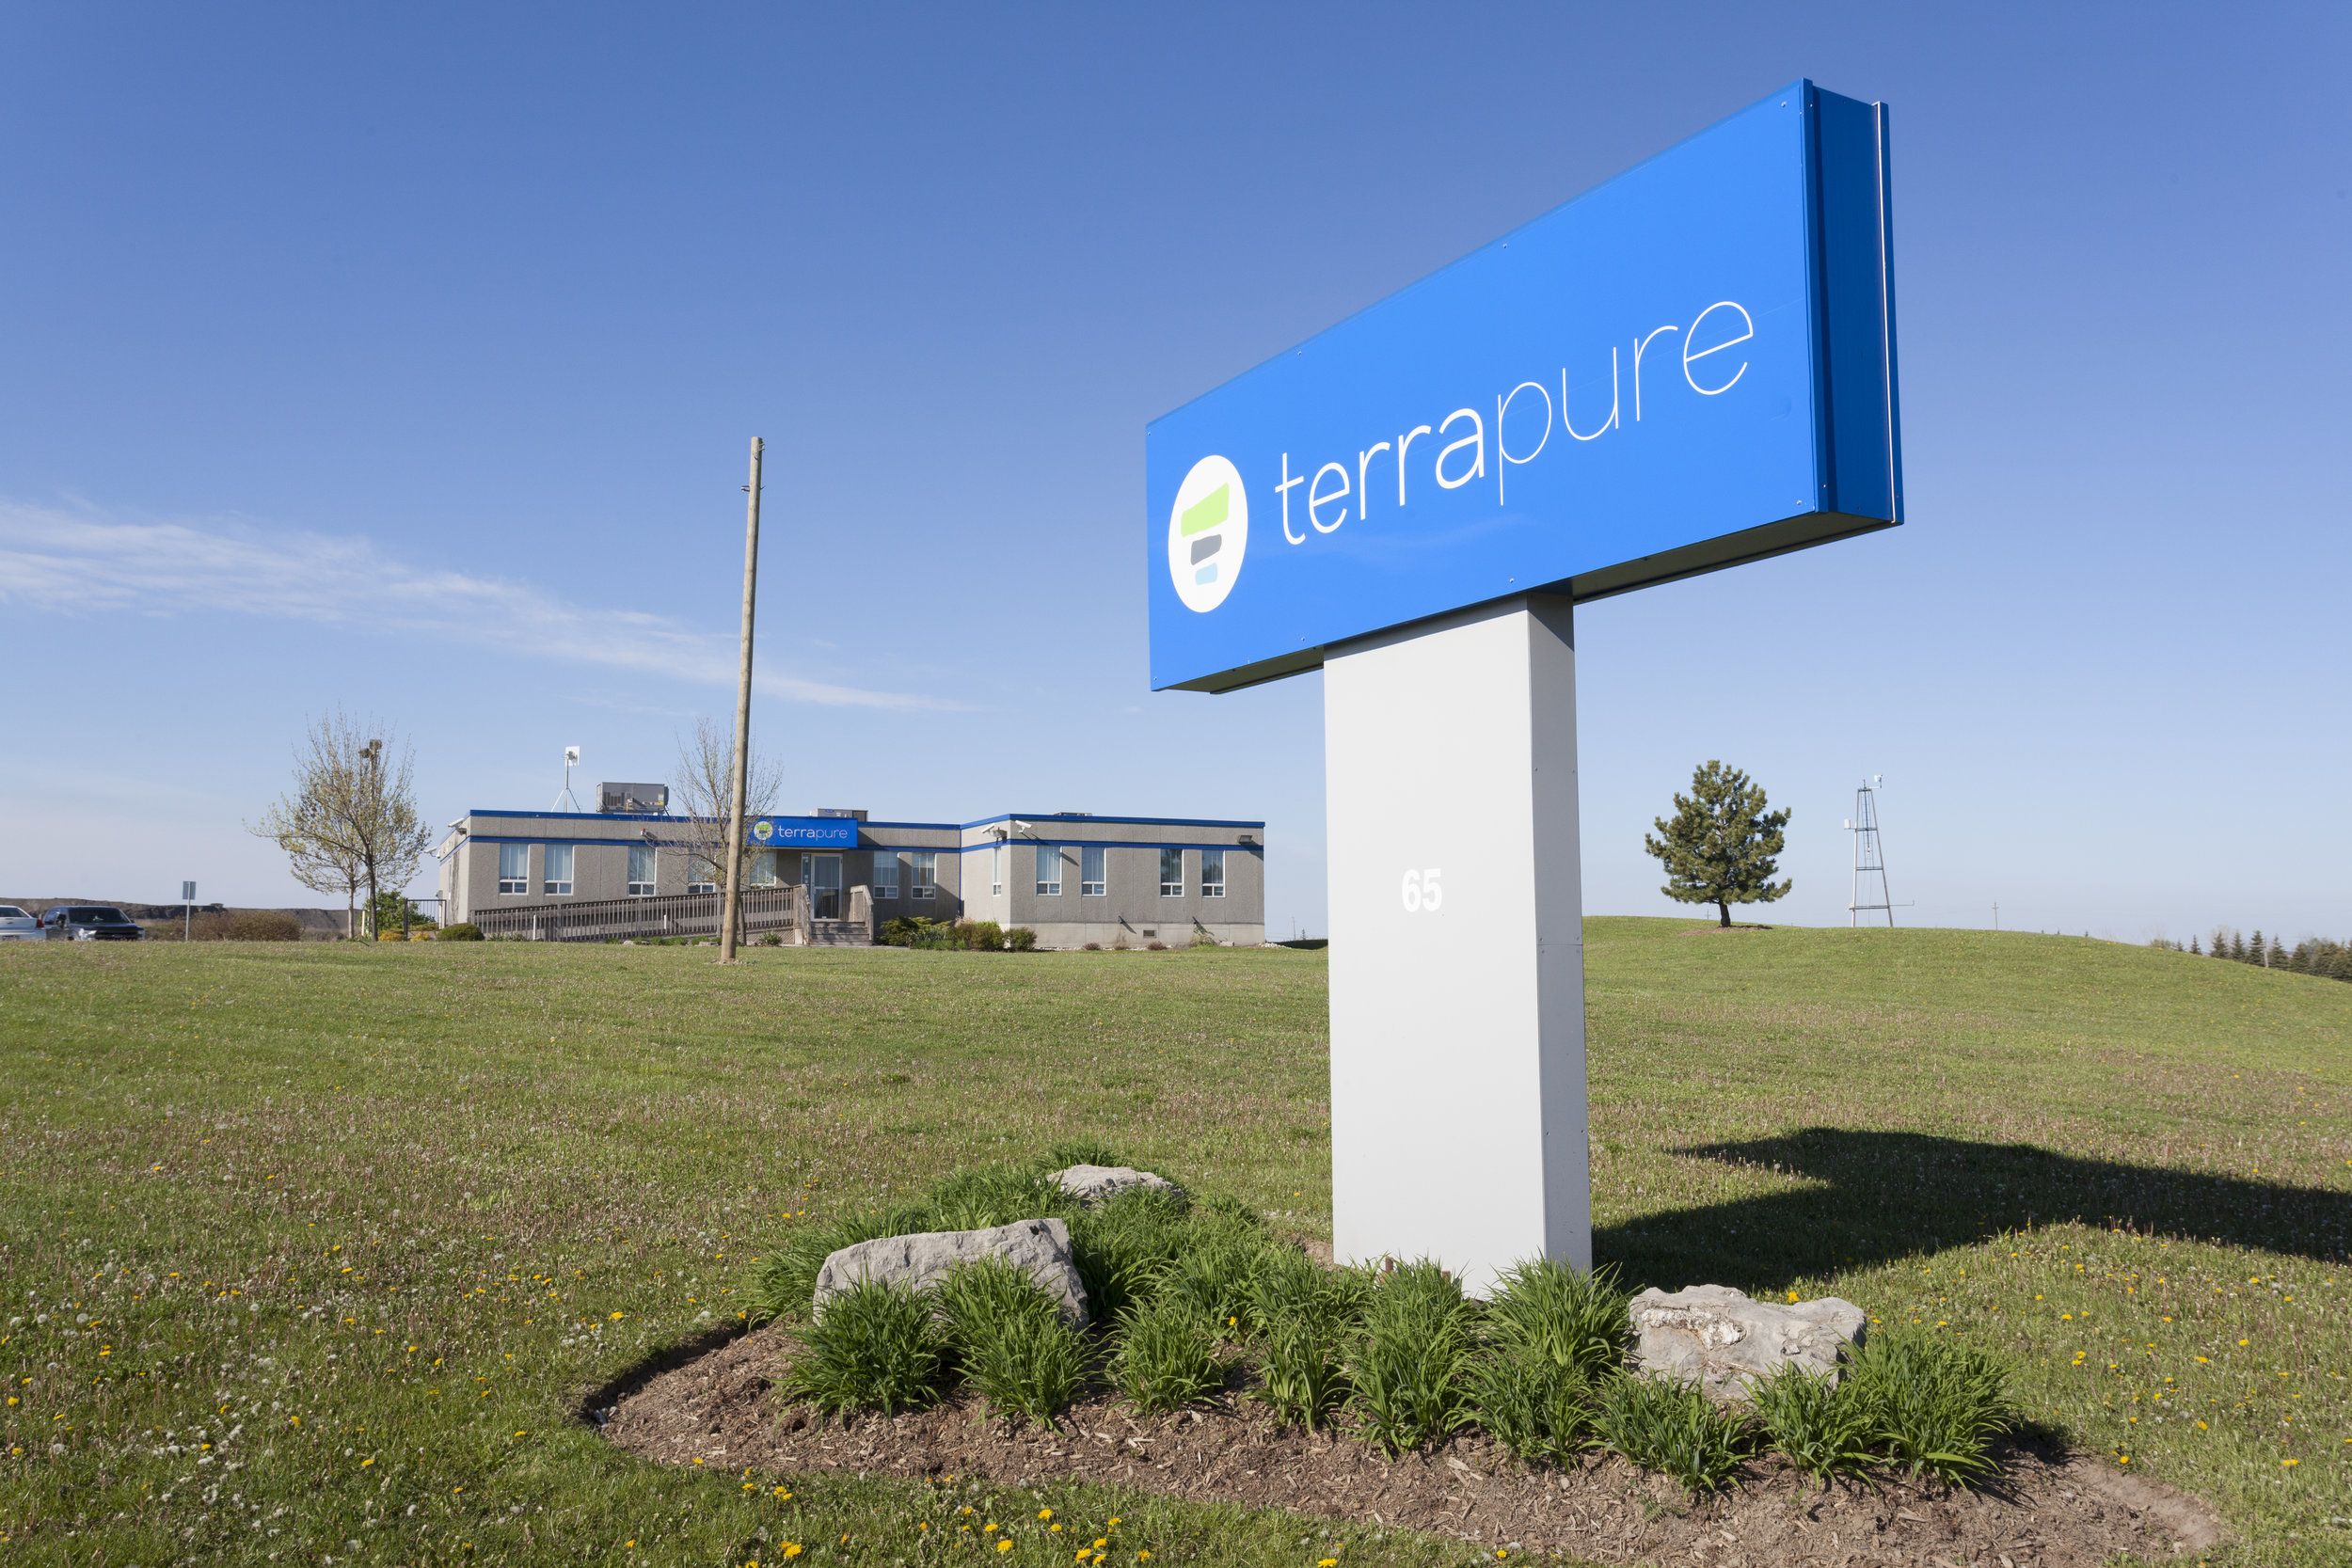 Terrapure Environmental is a leading Canadian provider of innovative, cost-effective environmental services and recycling solutions that help address industry's most complex environmental challenges.